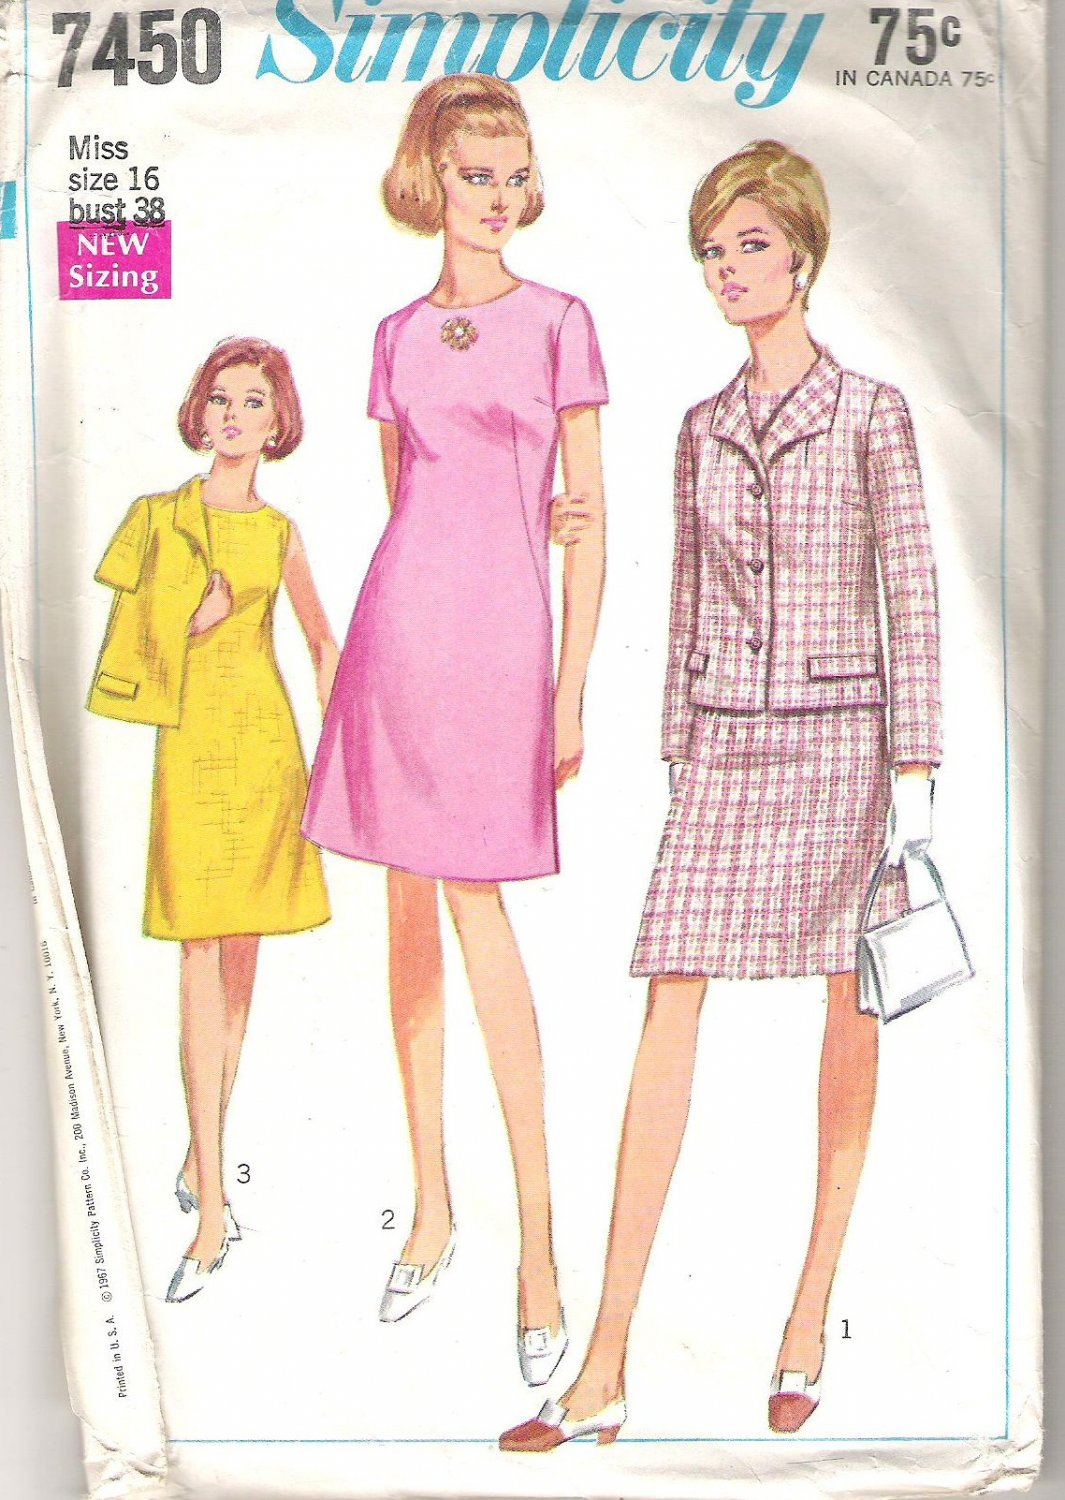 1967 Simplicity Pattern 7450 Vintage Dress and Jacket  with Italian-Type Collar  Size 16  Cut